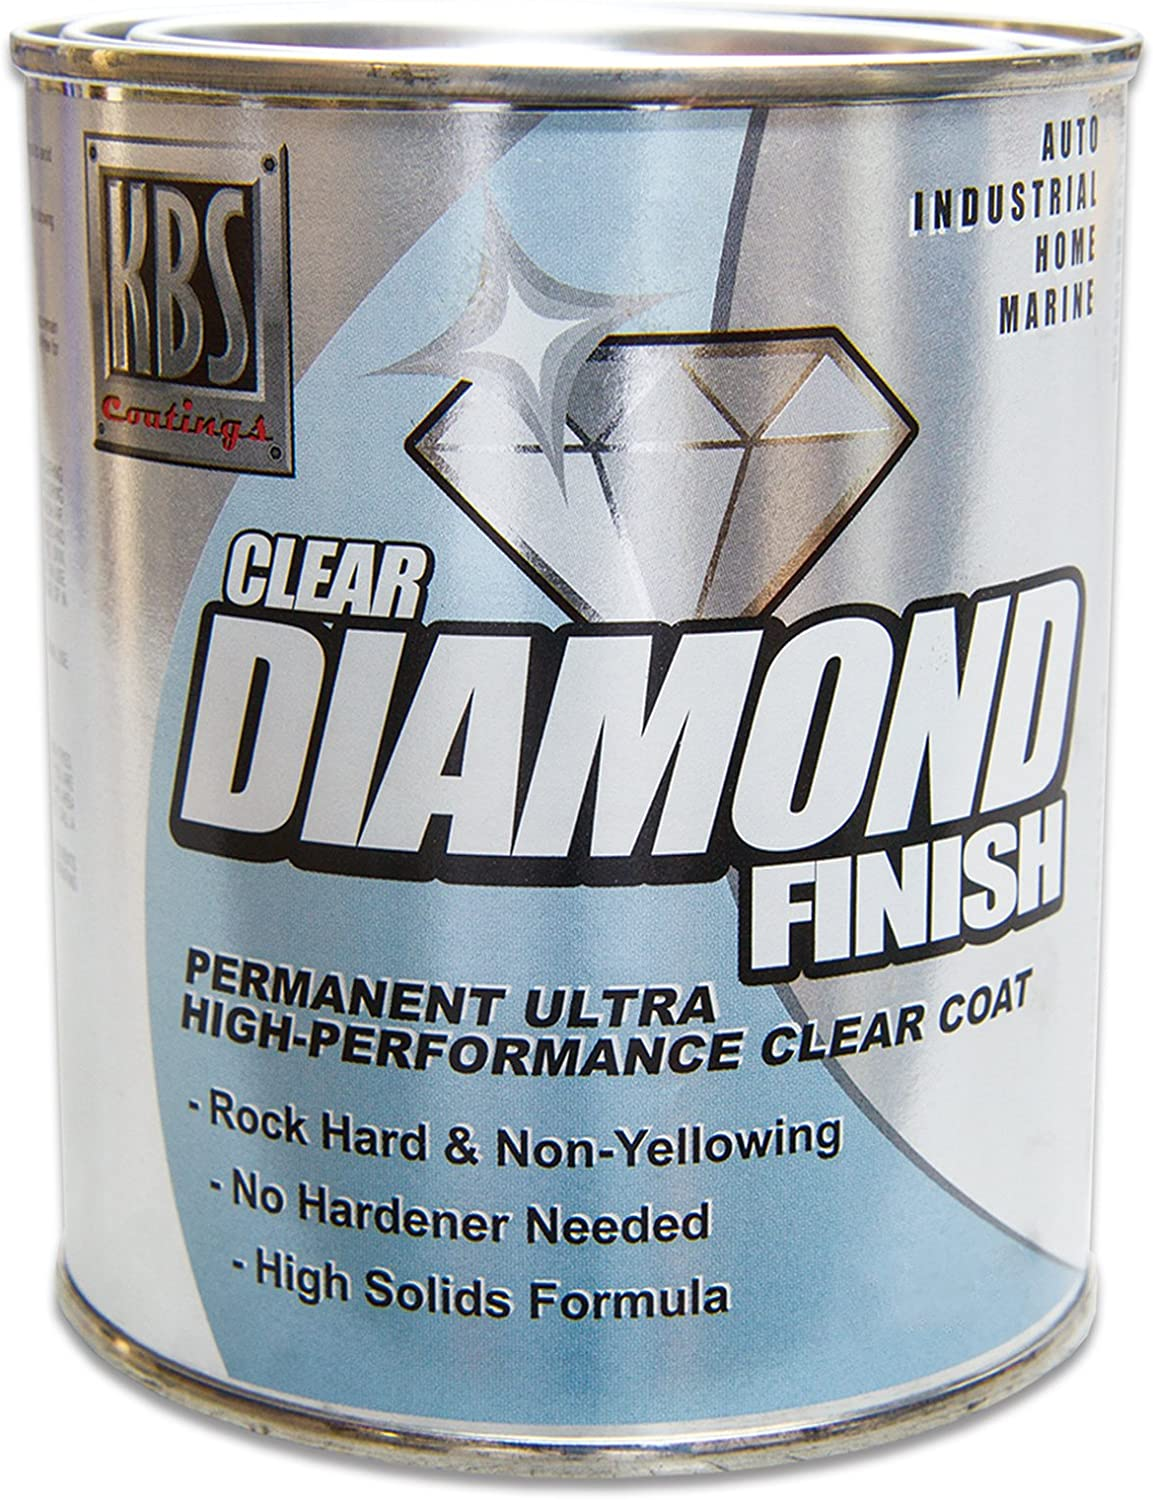 KBS Coatings 8304 DiamondFinish Clear Coat - 1 Pint, Coats up to 50 sq ft